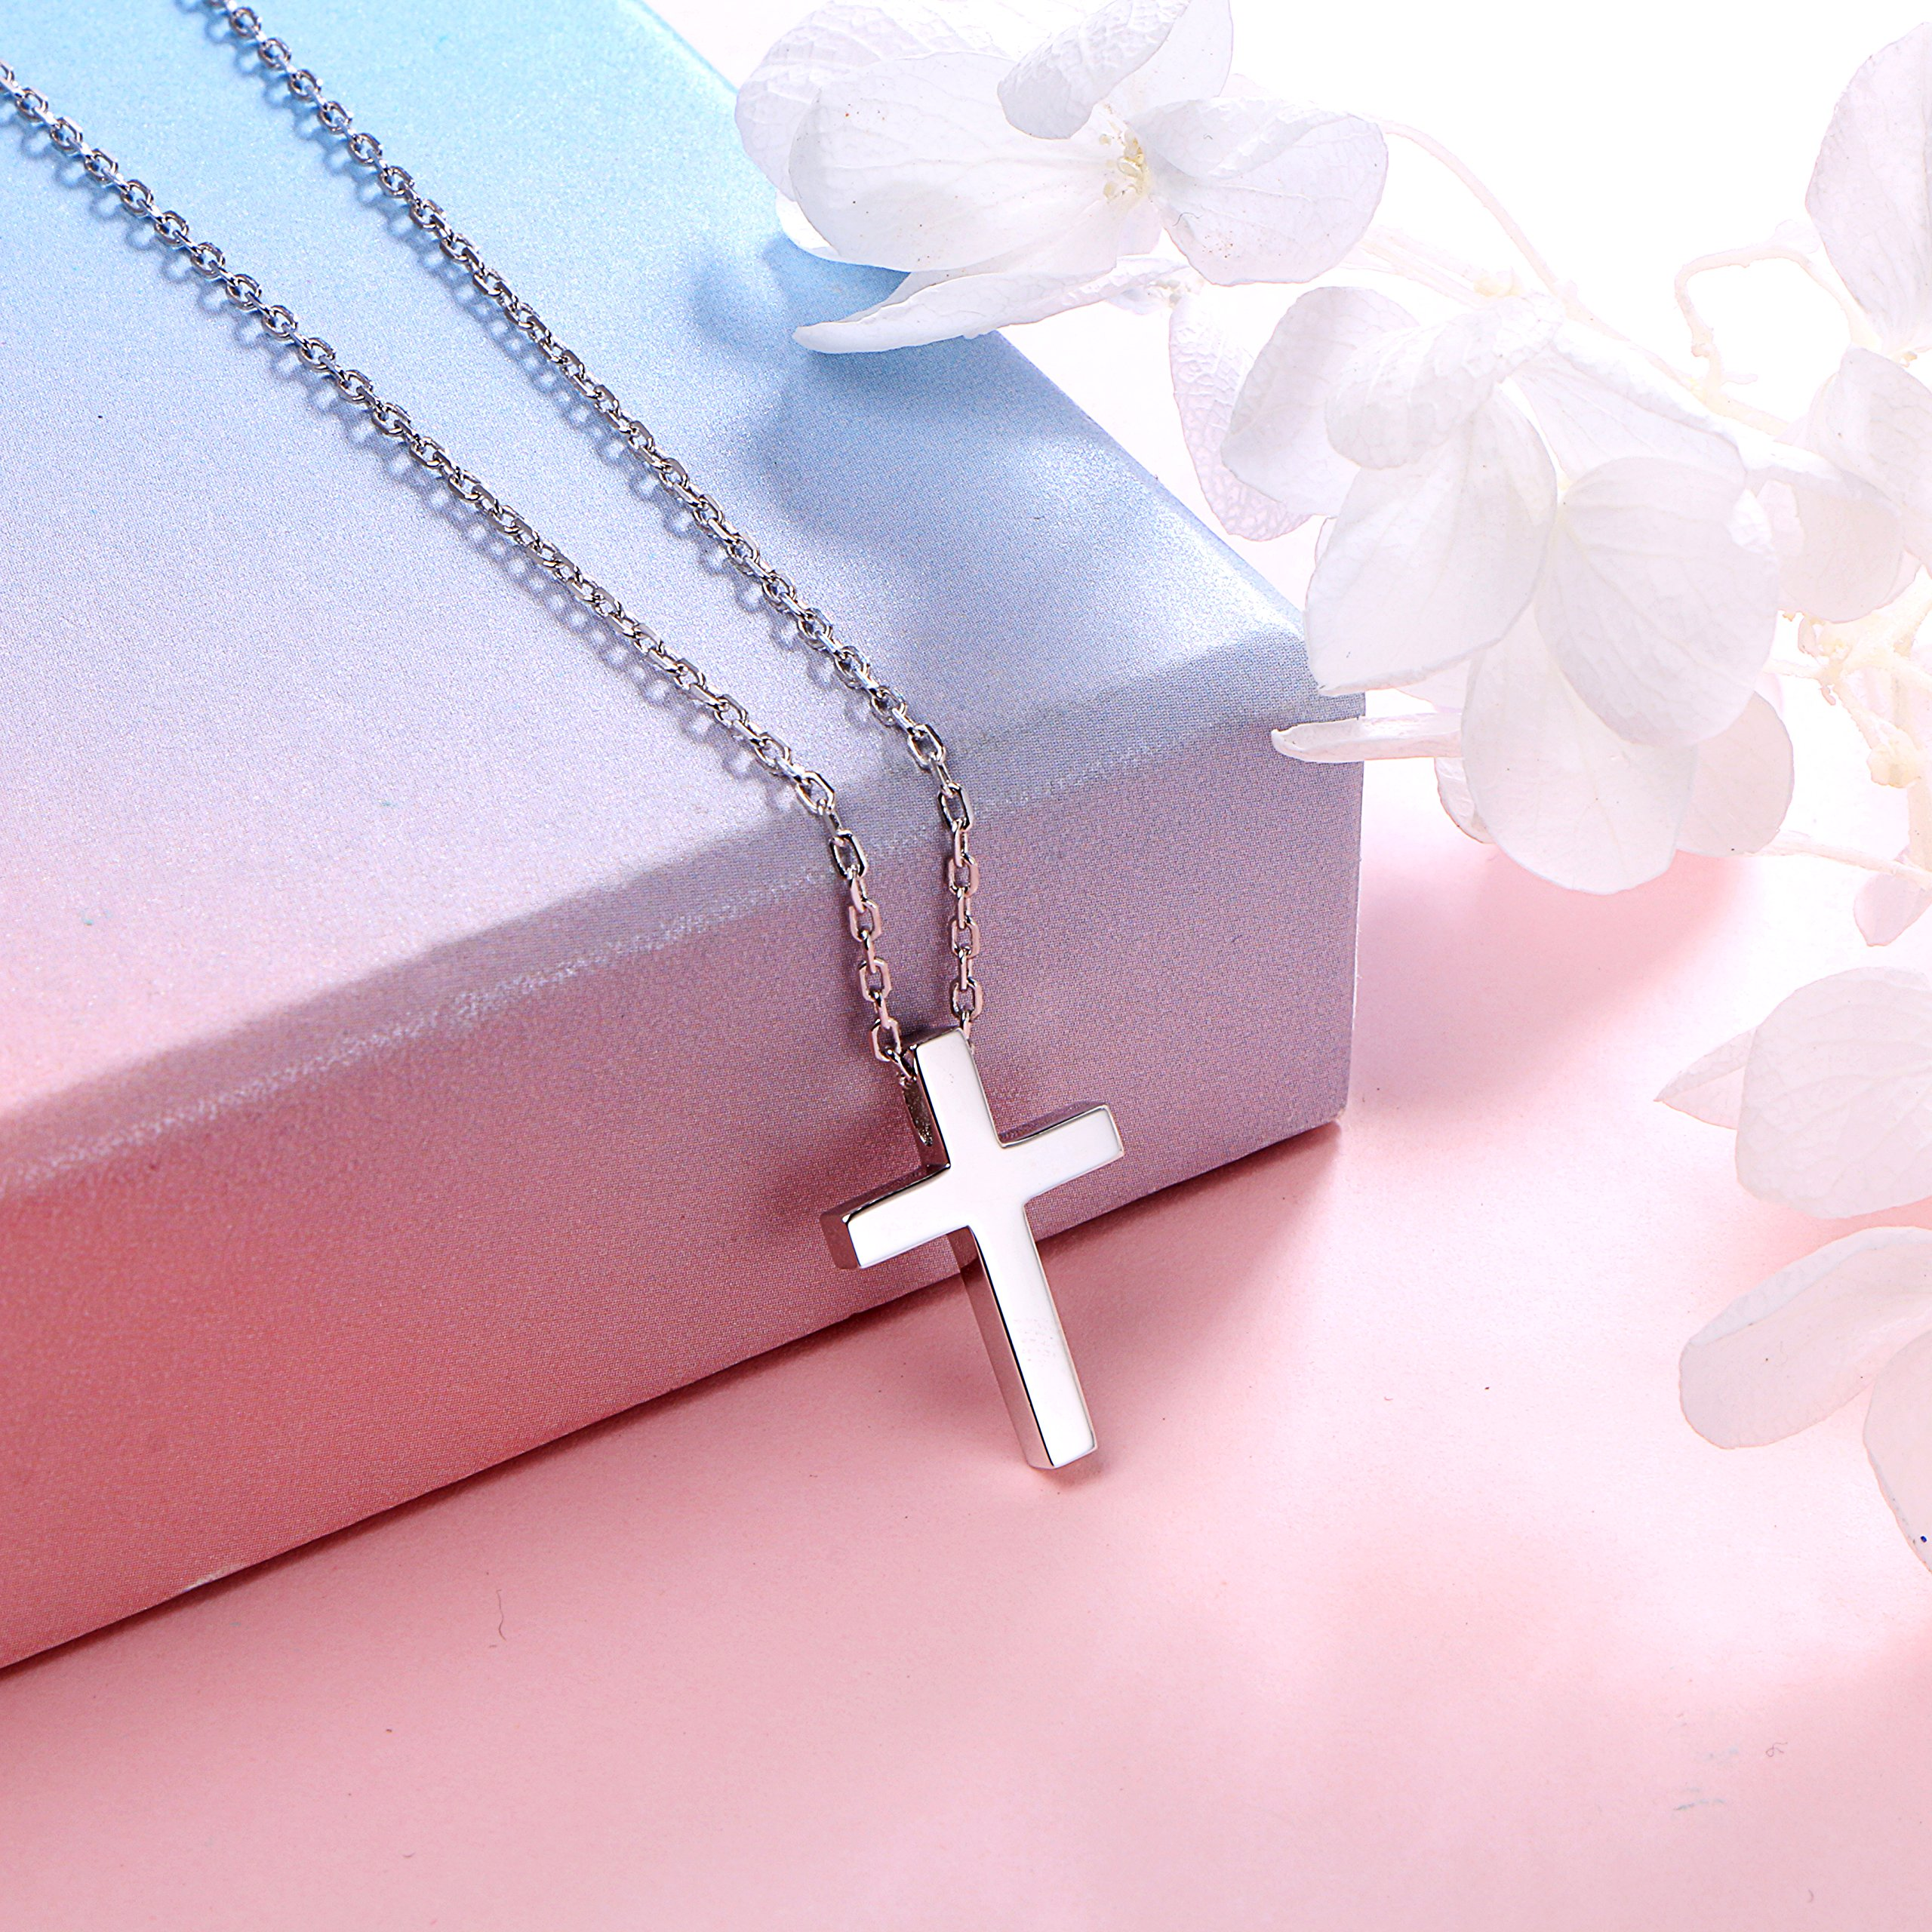 ALPHM S925 Sterling Silver Small Cross Pendant Necklace for Children Girl Baby boy 16'' Chain by ALPHM (Image #3)